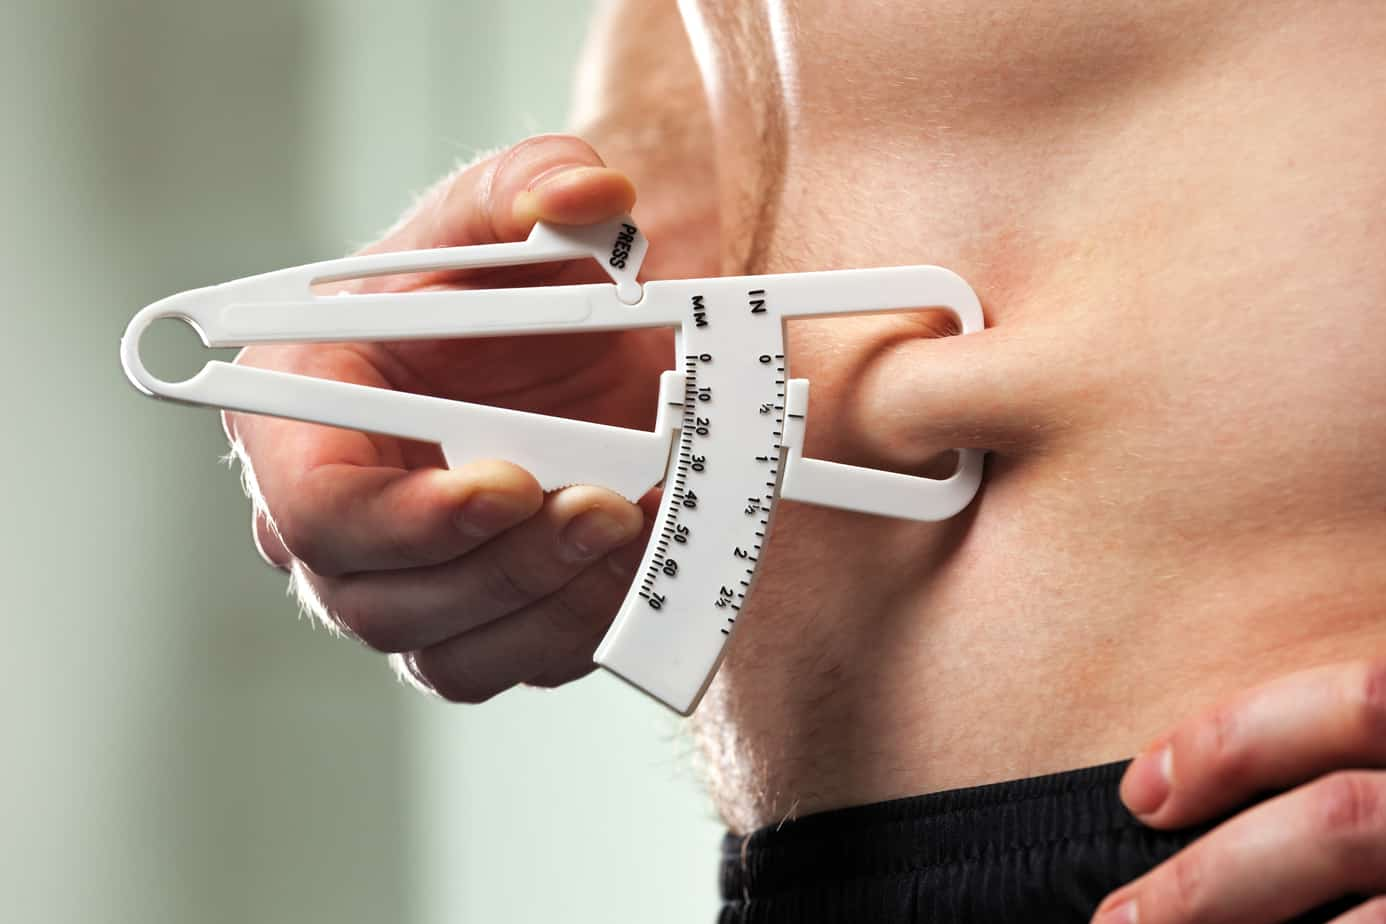 body fat percentage caliper test